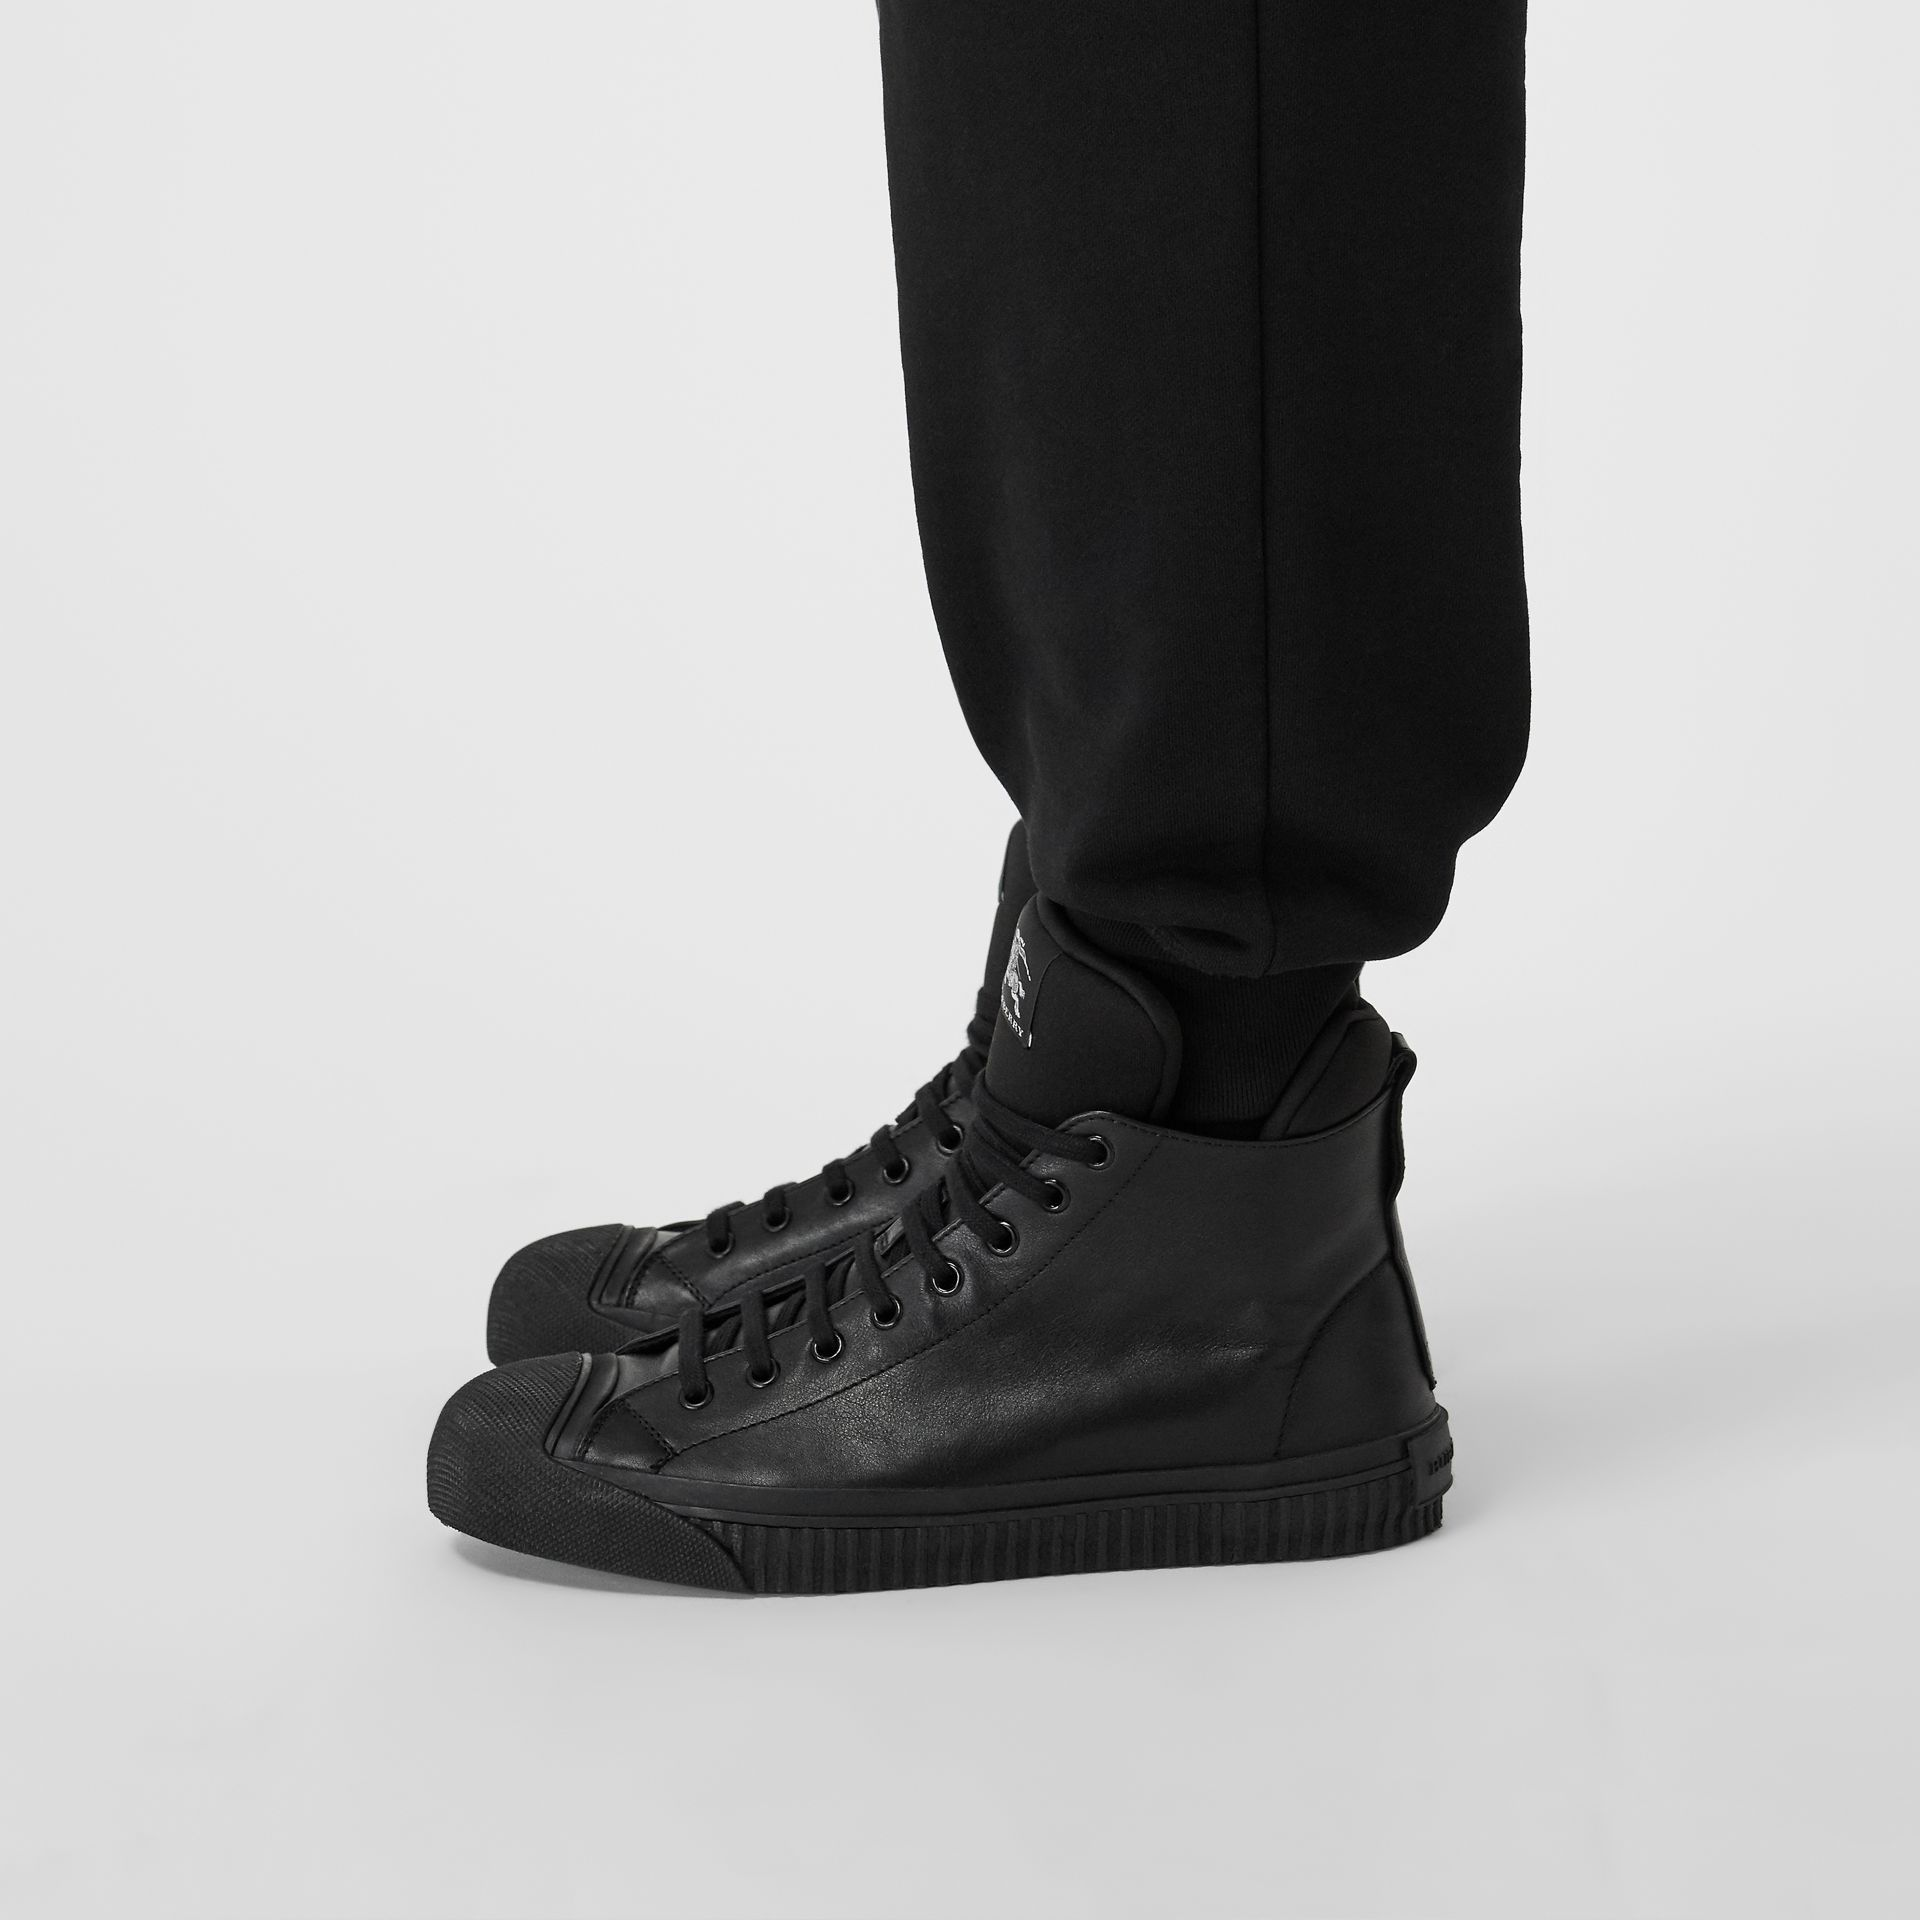 Leather and Neoprene High-top Sneakers in Black - Men | Burberry Australia - gallery image 2